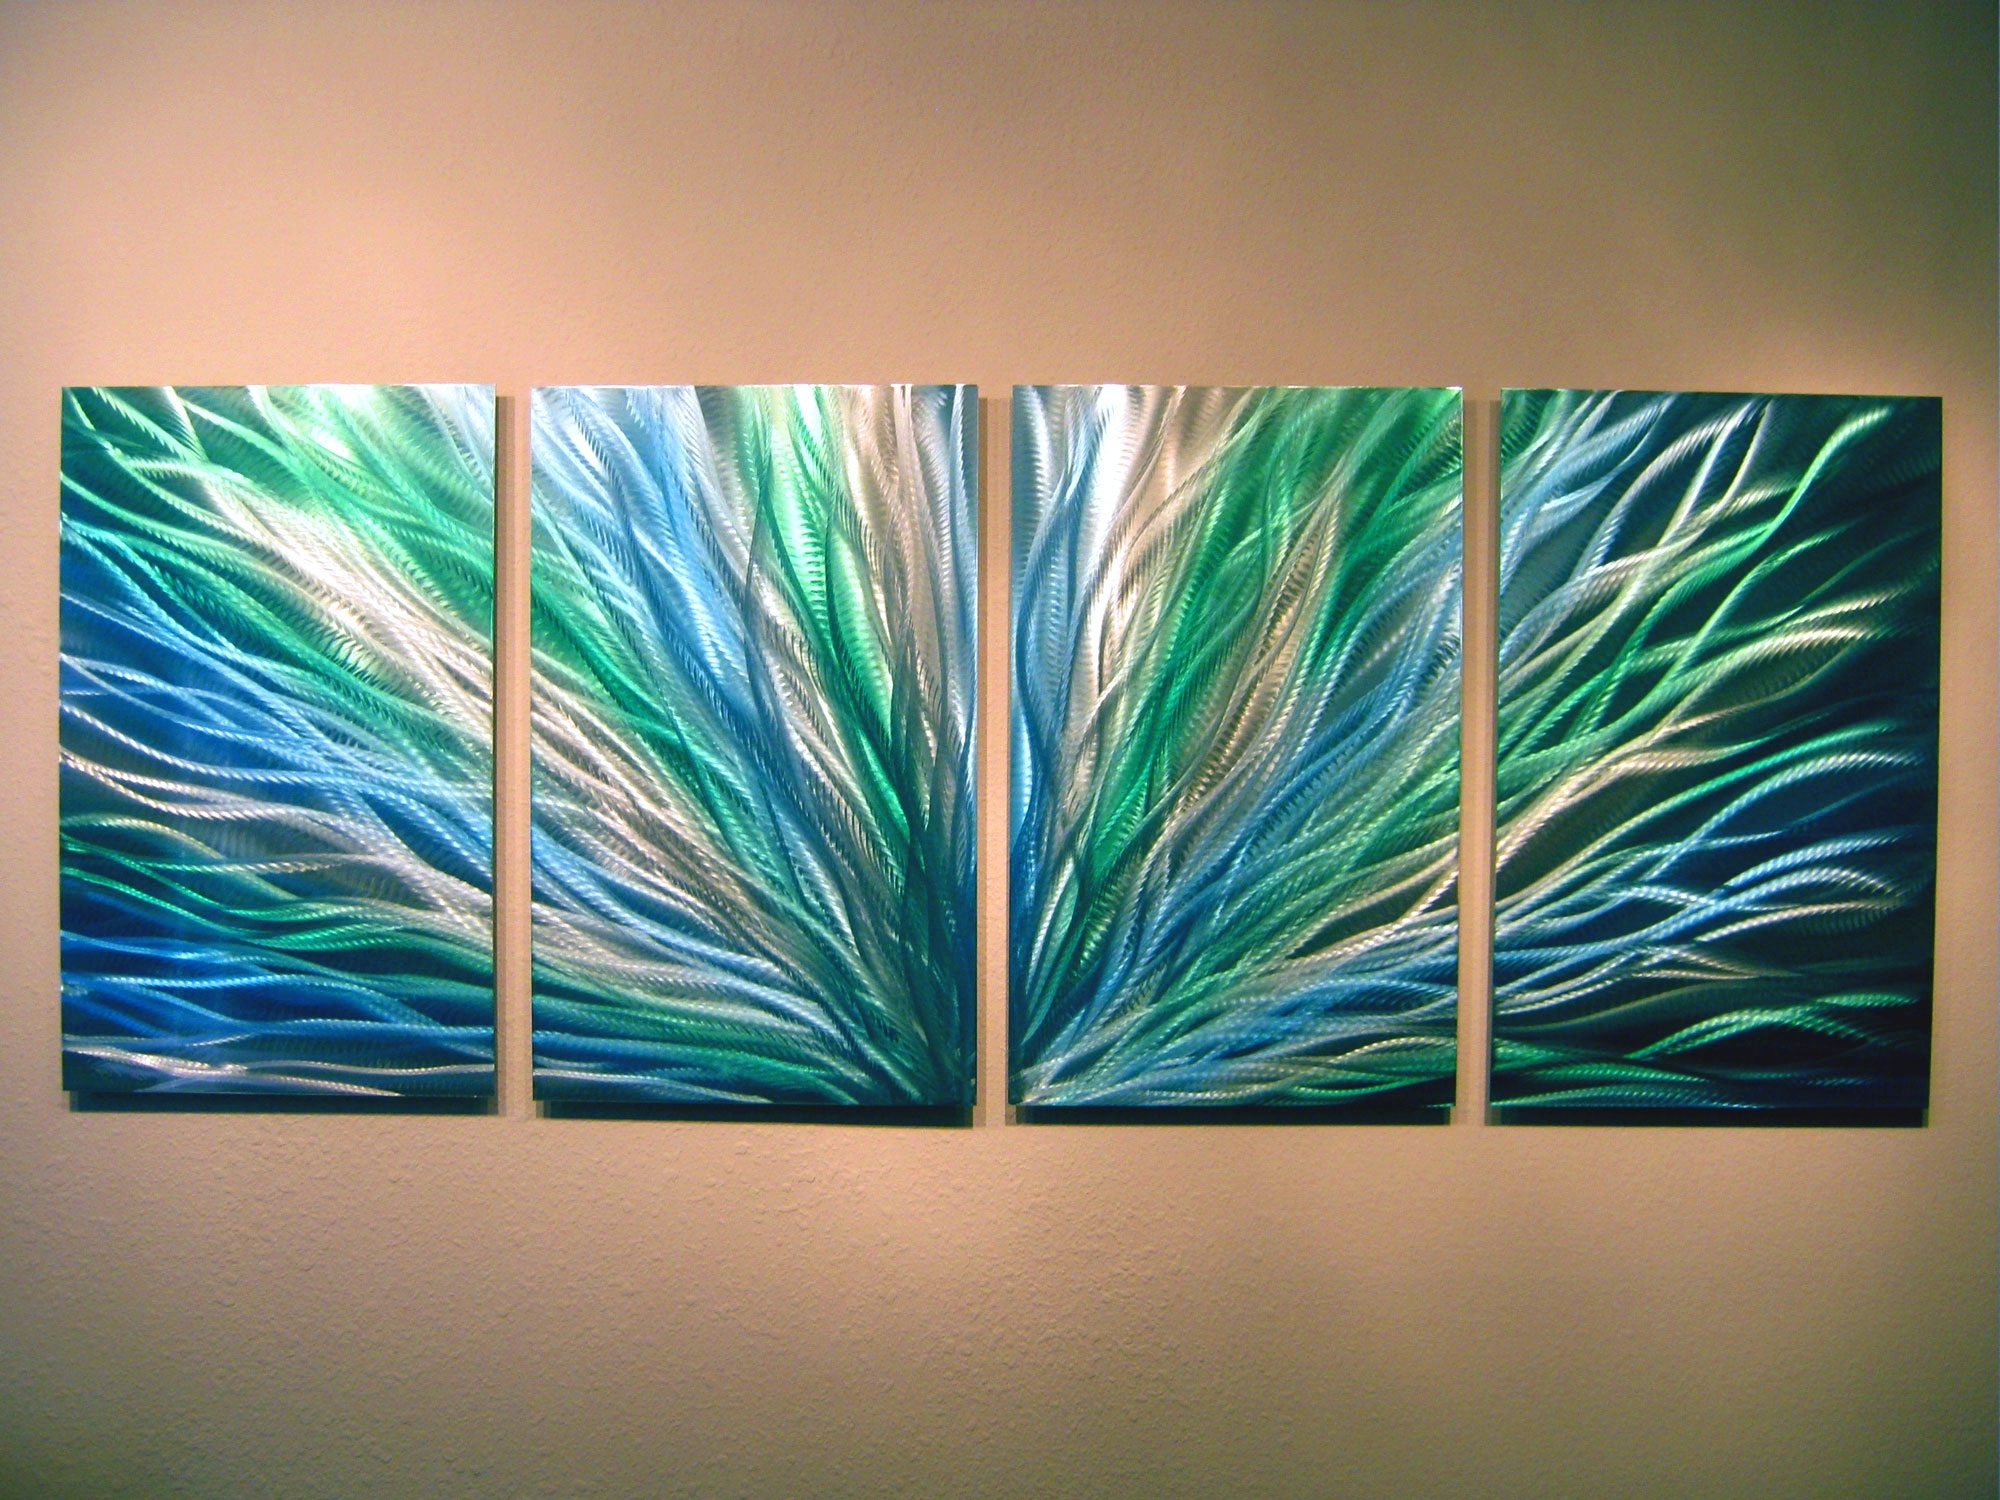 Most Recent Contemporary Wall Art Throughout Radiance Blue Green Abstract Metal Wall Art Contemporary Modern (View 7 of 15)